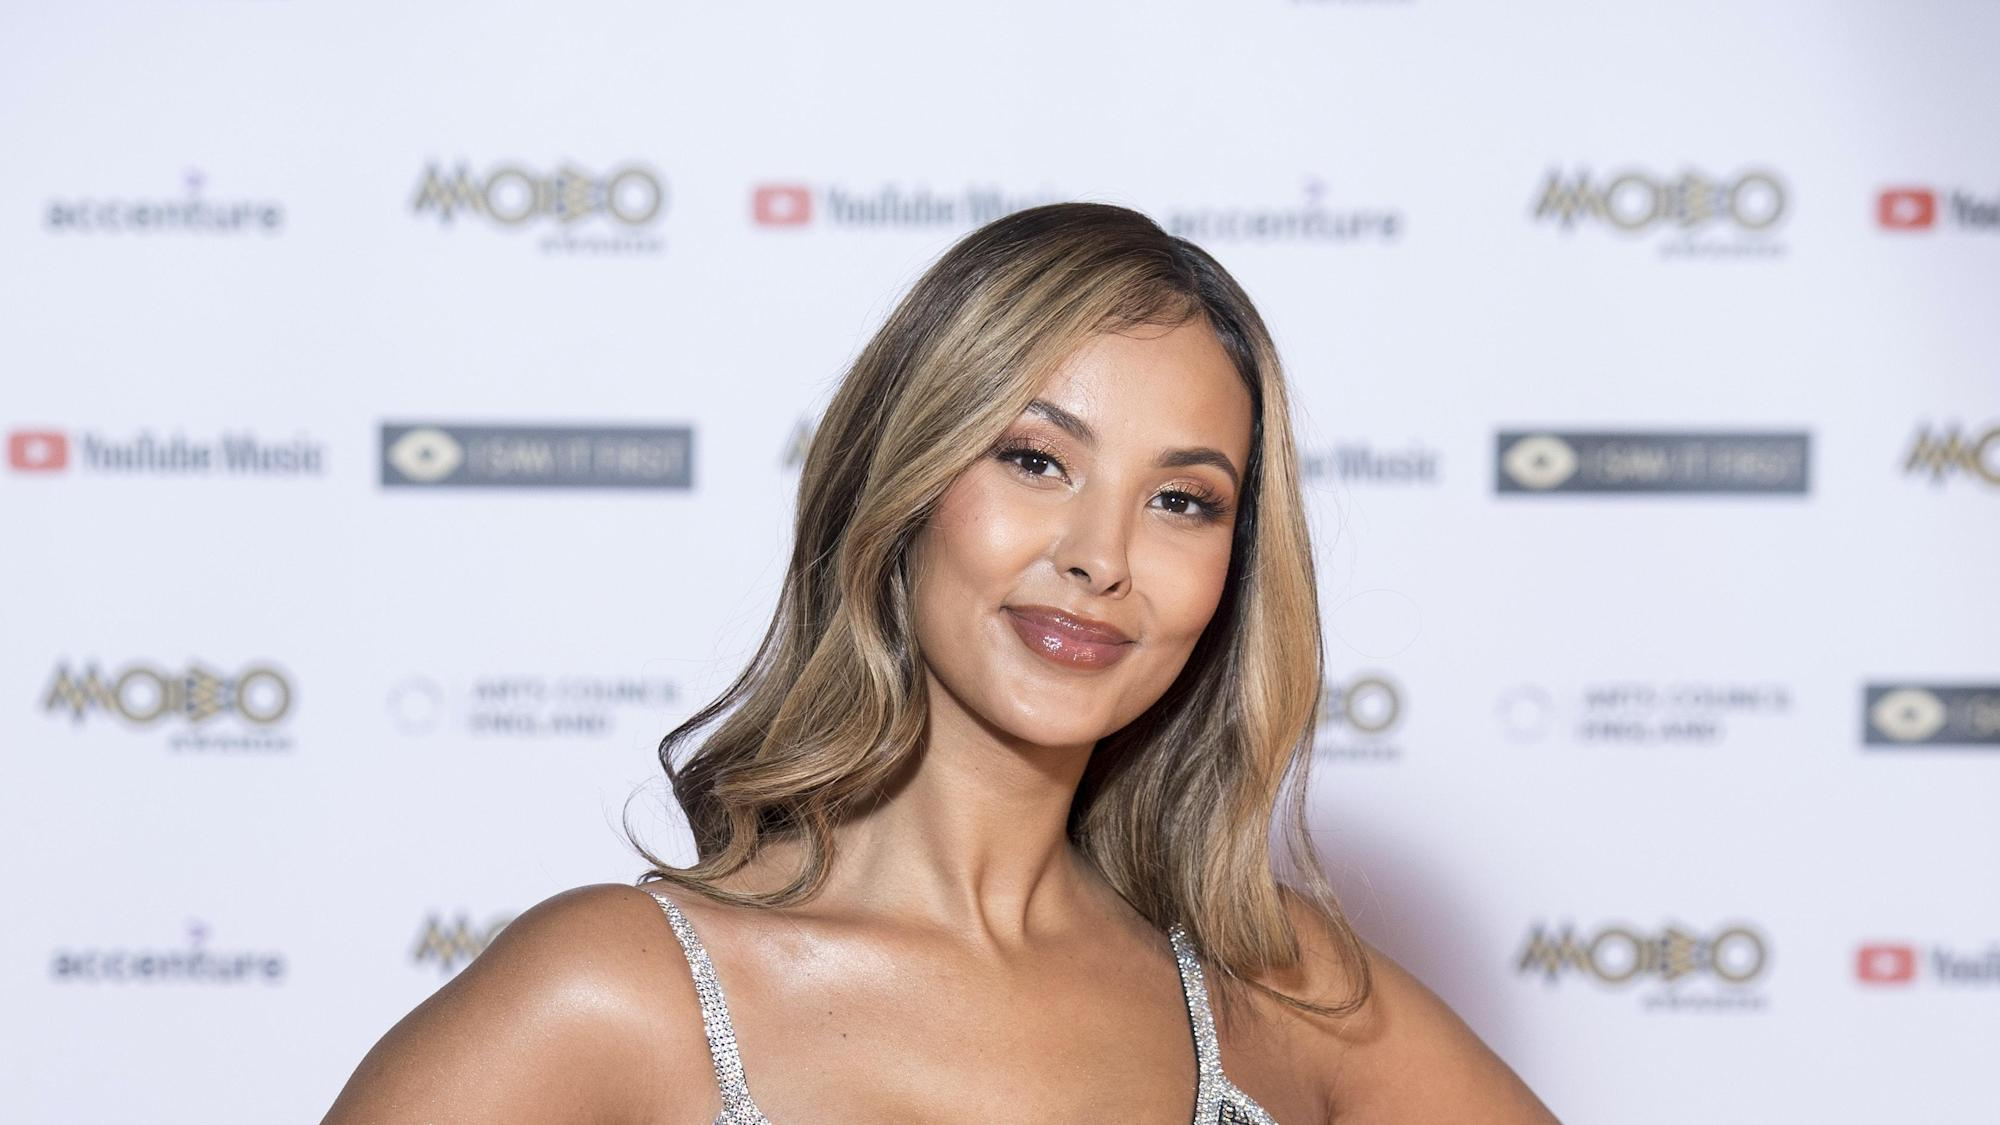 Maya Jama offers update on debut film role